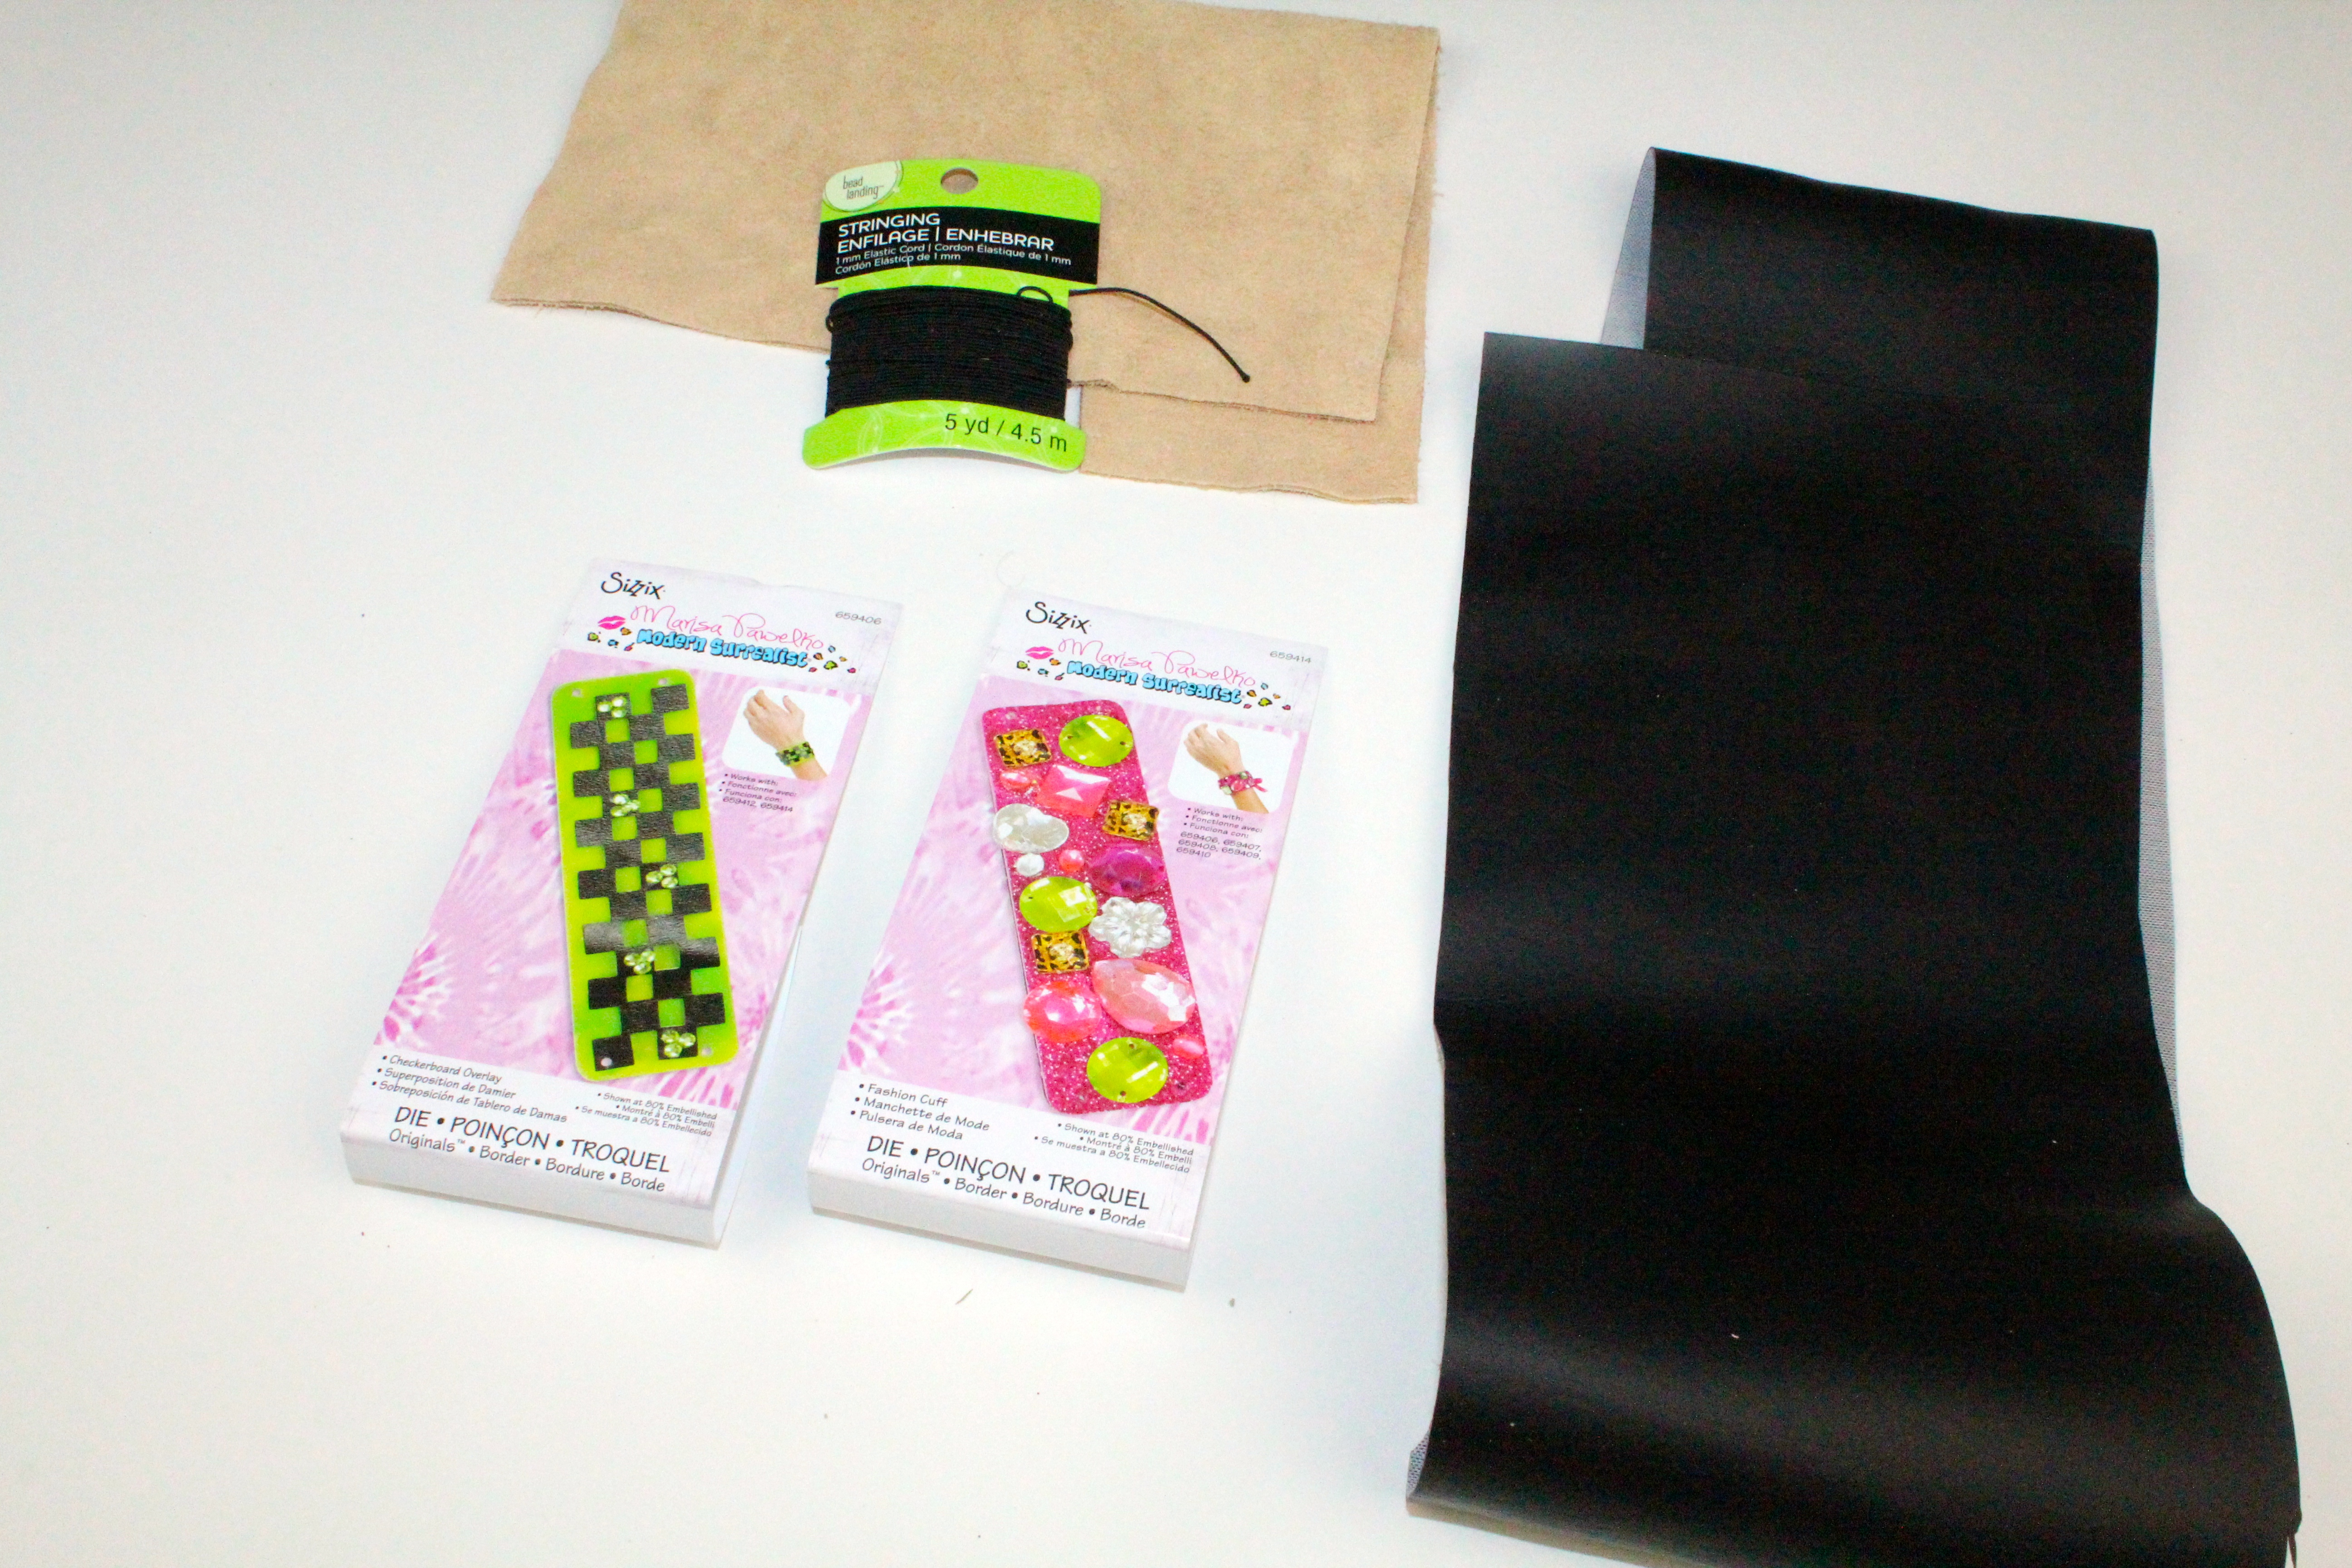 Diy cuff bookmark for any guy a little craft in your day for Diy bookmarks for guys